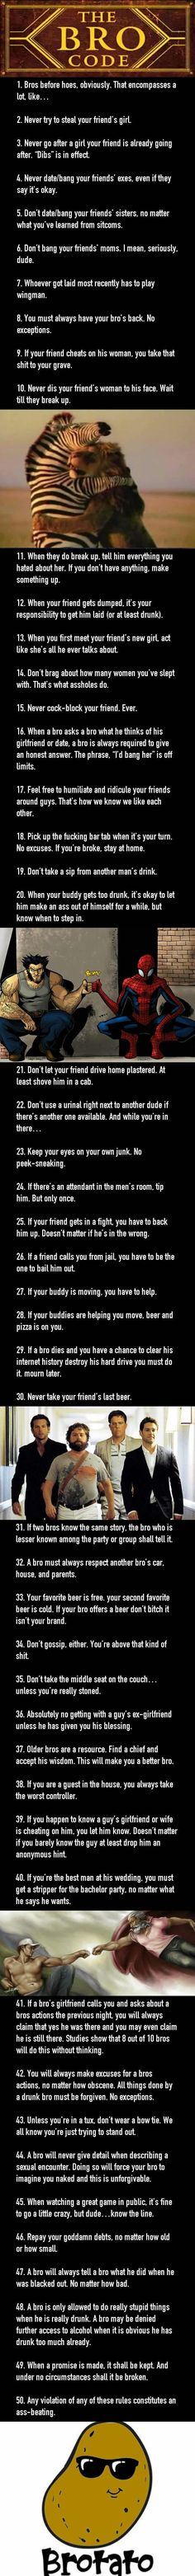 To all the guys out there, always follow #thebrocode. https://9gag.com/gag/aW8XejK